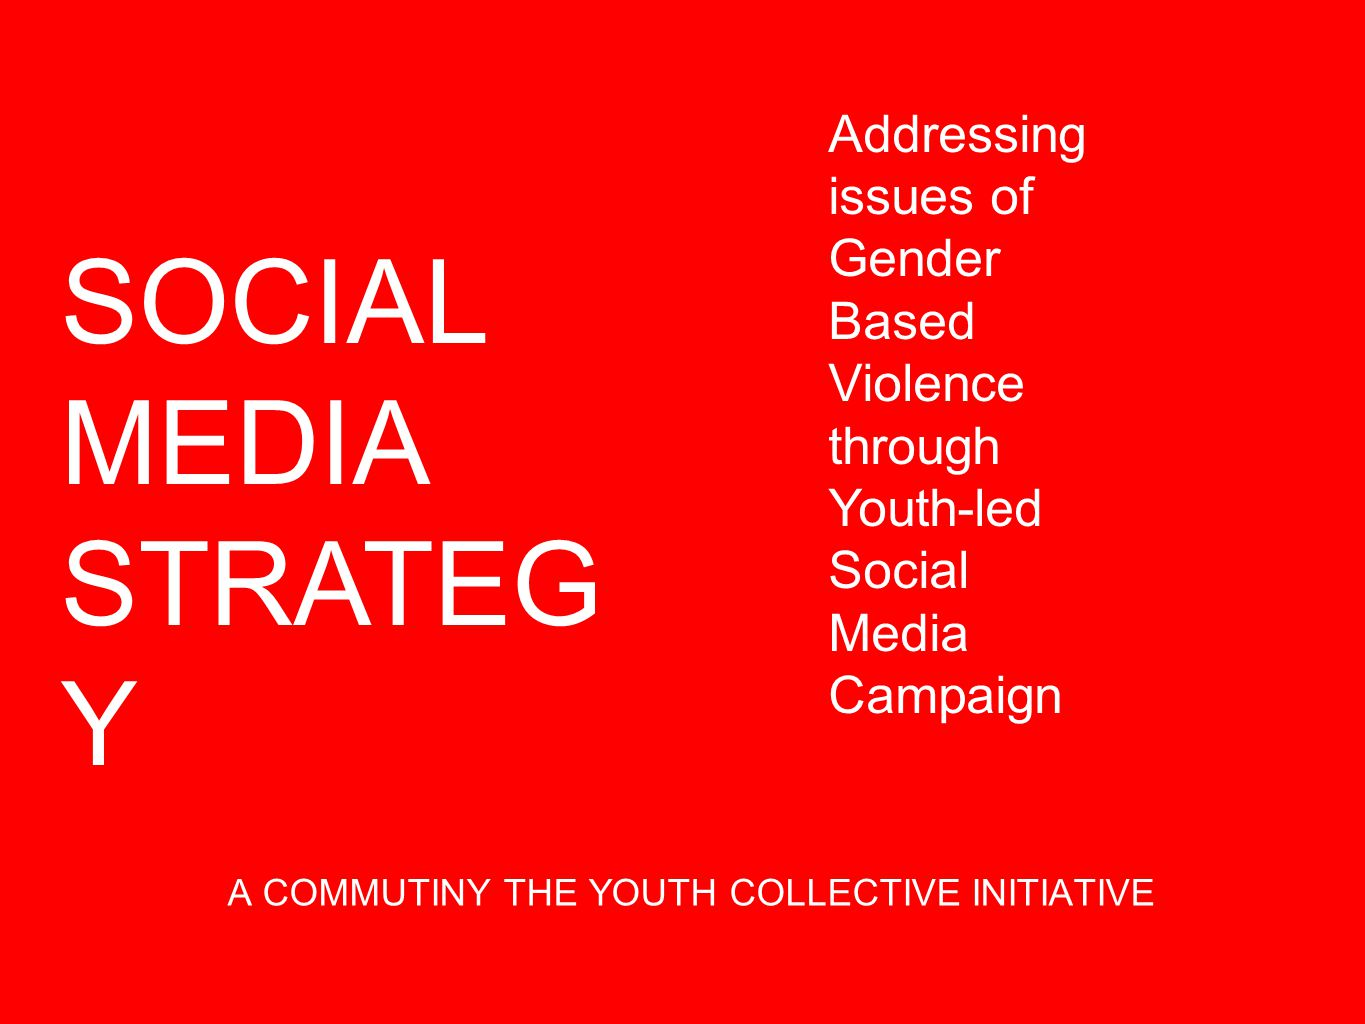 A COMMUTINY THE YOUTH COLLECTIVE INITIATIVE SOCIAL MEDIA STRATEG Y Addressing issues of Gender Based Violence through Youth-led Social Media Campaign